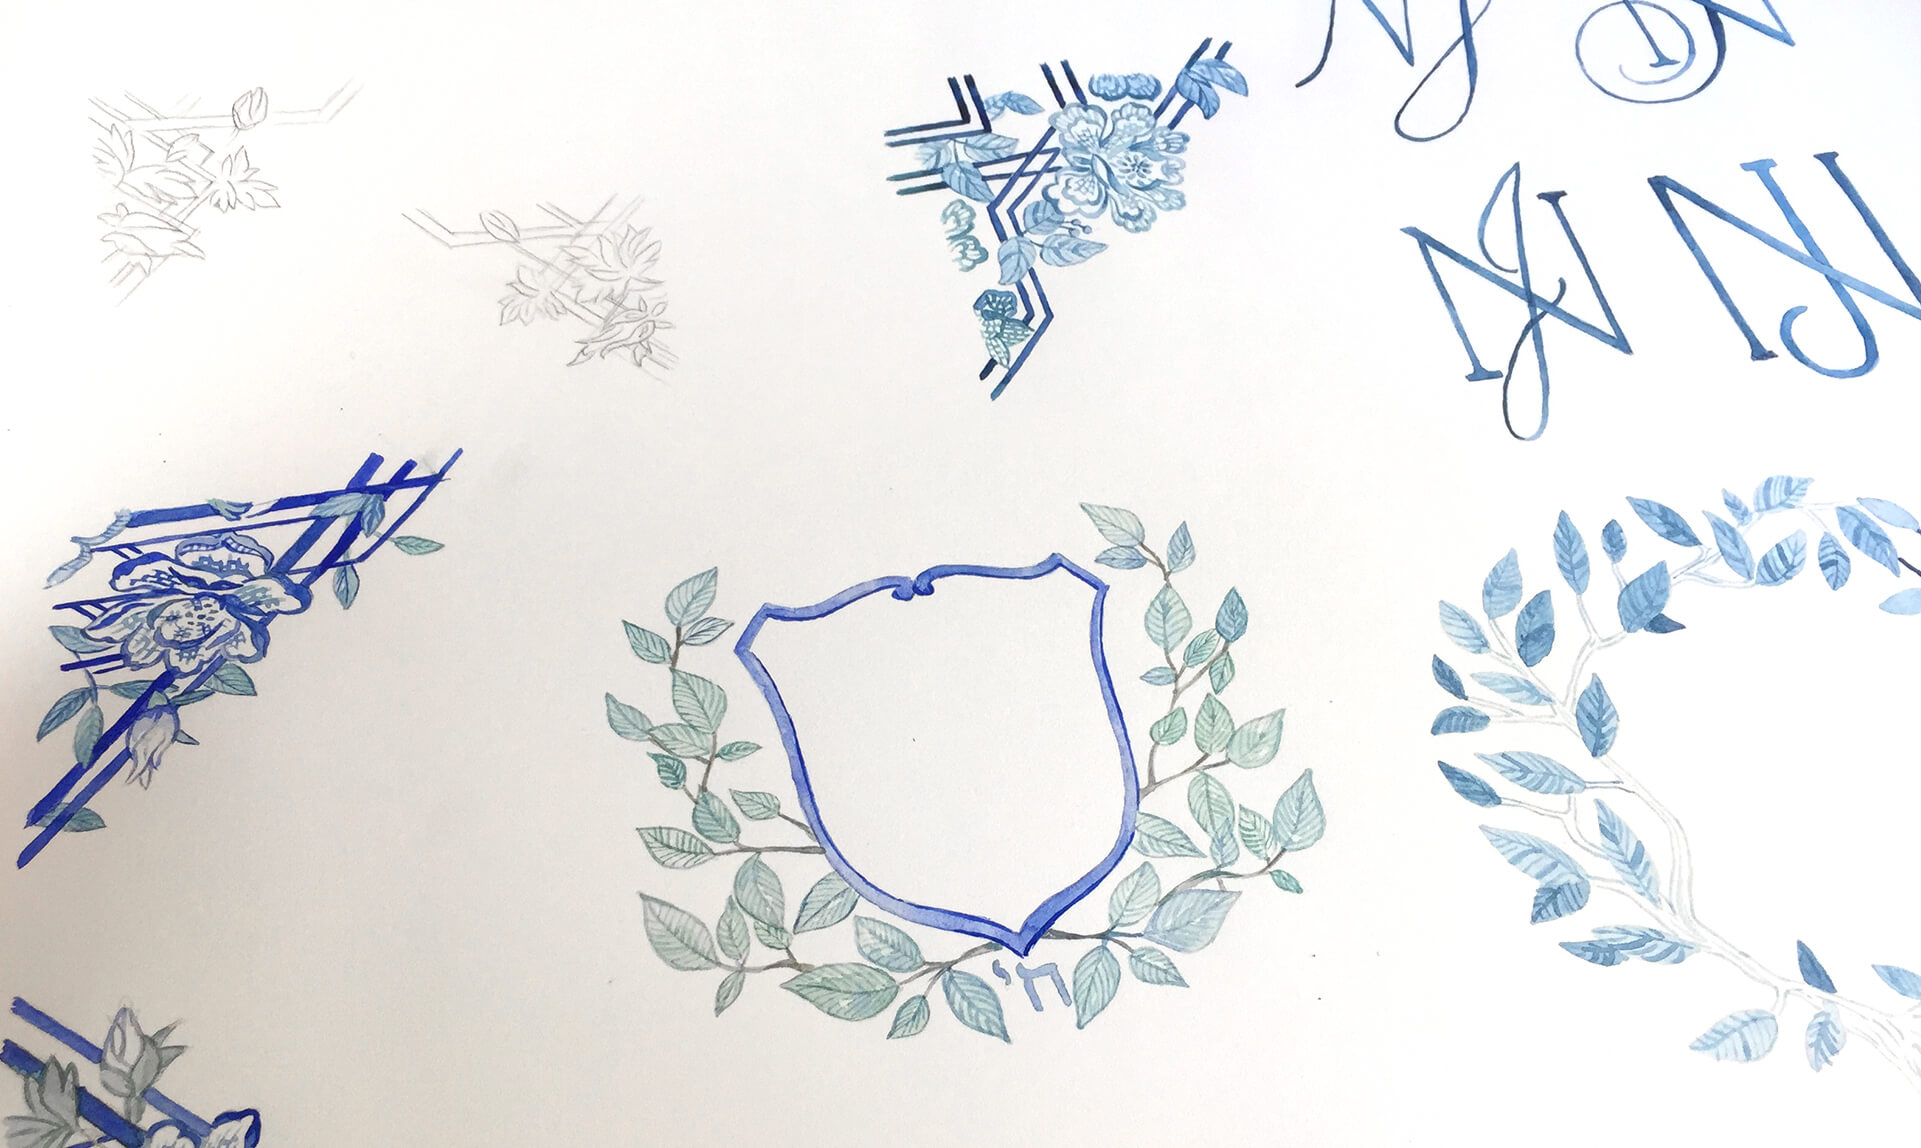 Watercolor process for crest and design elements